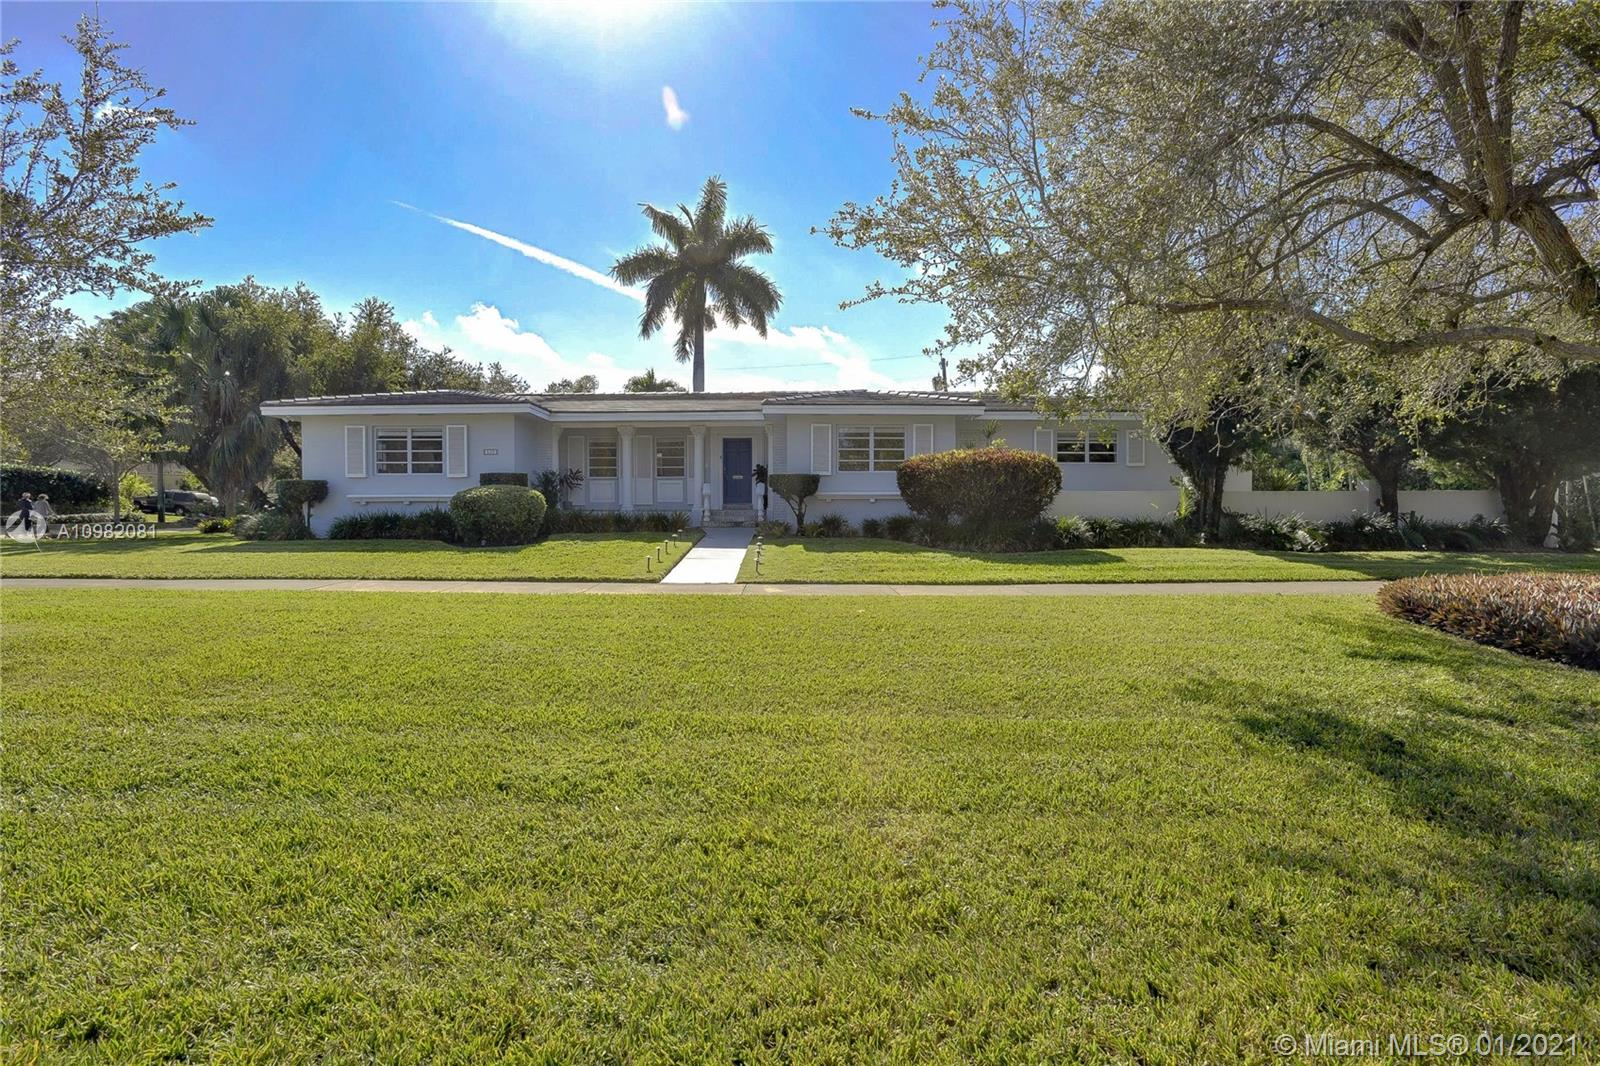 Welcome to this beautiful, sun-filled South Gables home sitting on enormous 17,701 sq. ft. corner lot. Walk into gleaming wood floors and impact glass French doors leading out to large deck and garden. 2020 flat tile roof, large living/dining area with windows all around, oversized family room. Remodeled, bright eat-in kitchen, large pantry, indoor laundry area. Extra-large bedrooms with built-in/walk-in closets. Ring doorbell/security cameras throughout, beautiful outdoor lighting, large outdoor terrace. Fully functional 2 car garage, generous private side guest parking. Professional renderings from renowned architect for 6,000 sq. ft. new construction estate available upon request. Endless possibilities! Enjoy side-walked lined street and play in huge garden at this South Gables home.